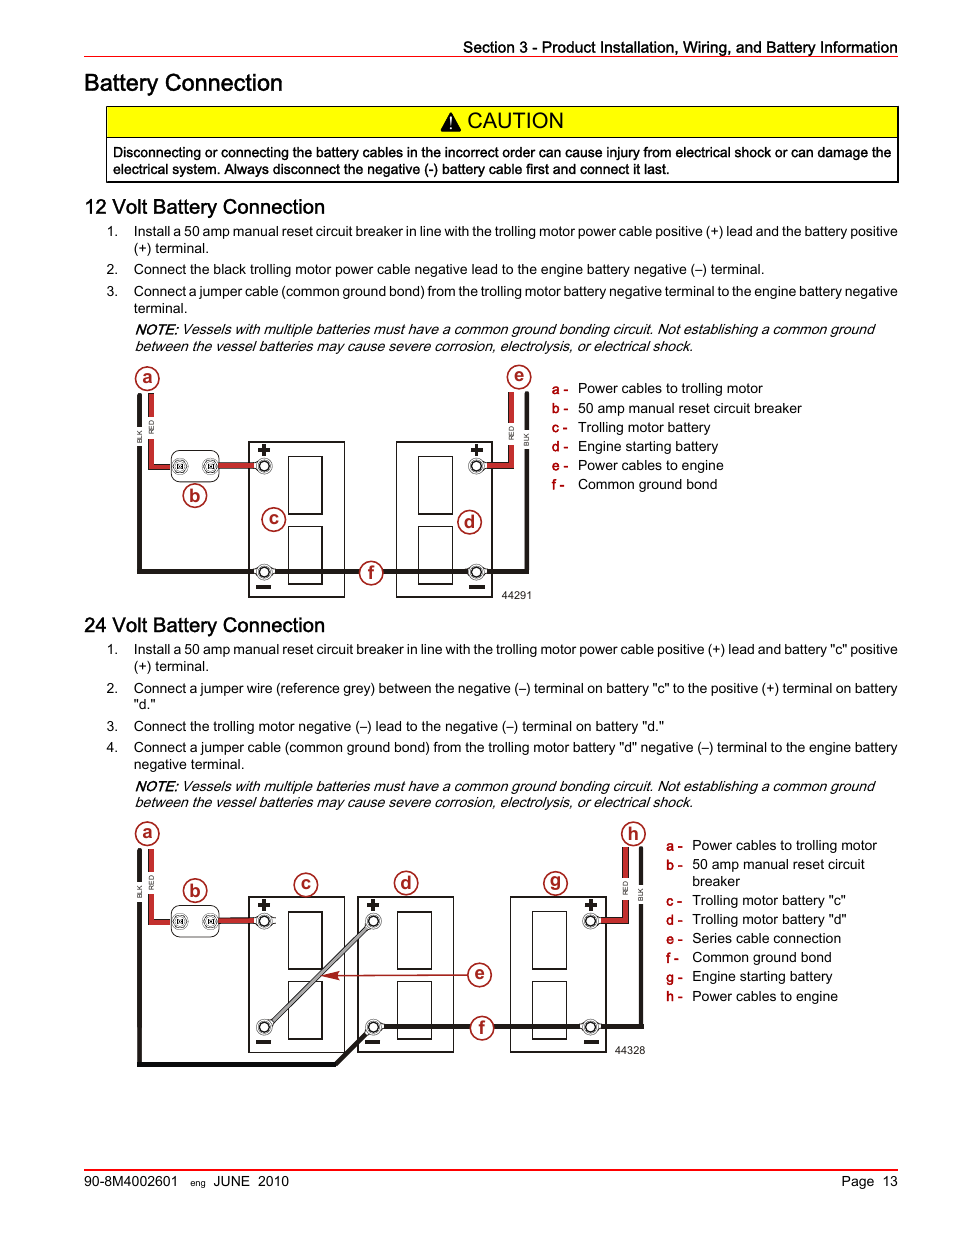 Hideaway Install Power Cable To Battery Question Manual Guide